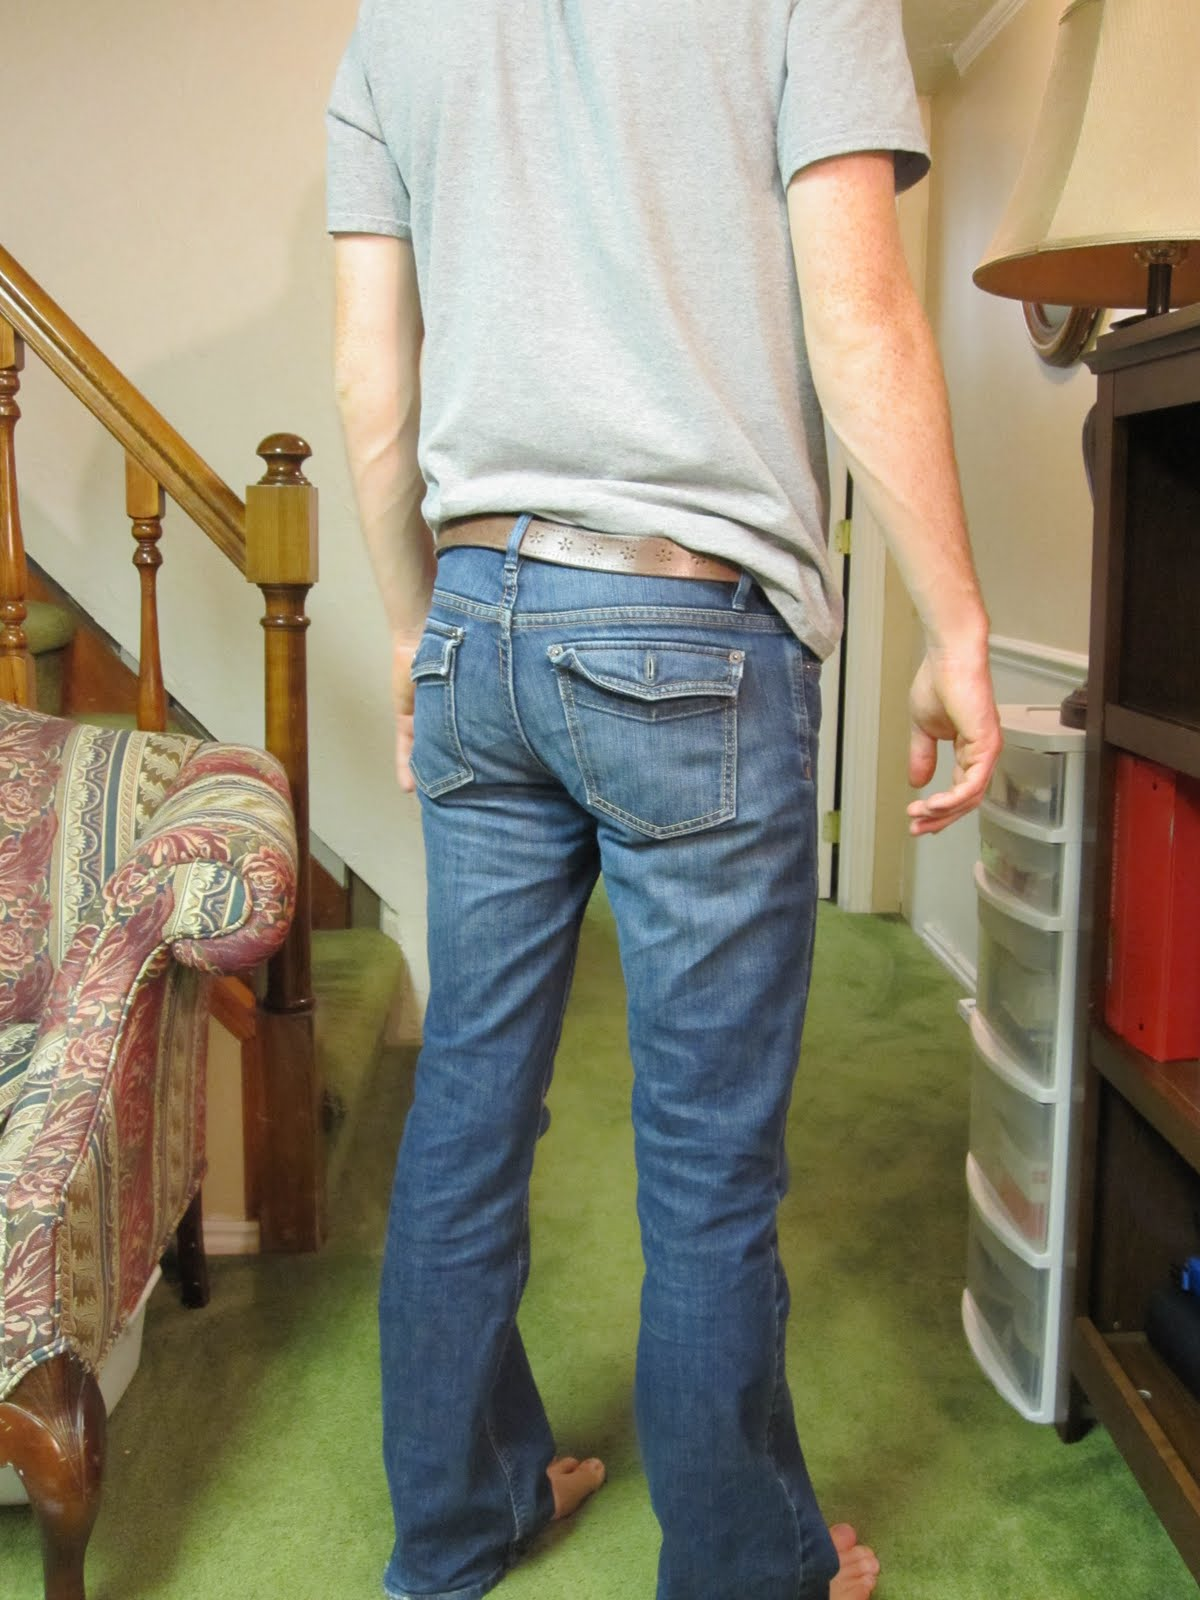 Ethan's Blog: Do these jeans make me look fat?